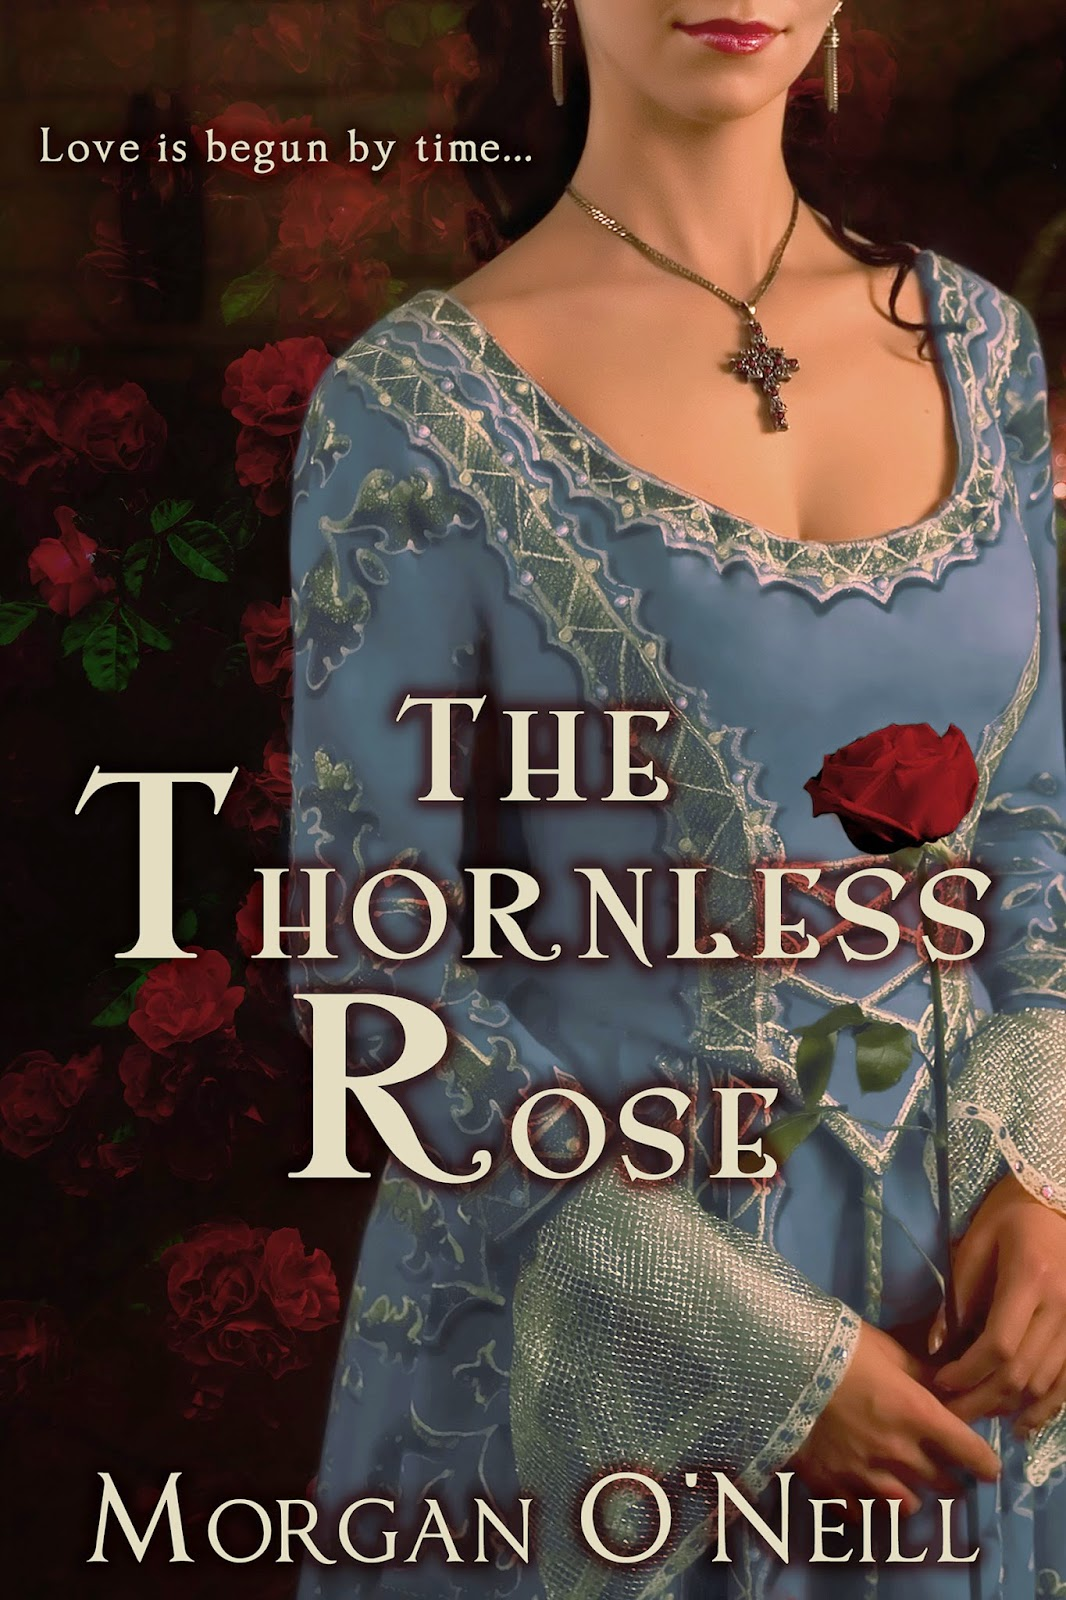 THE-THORNLESS-ROSE-1600x2400